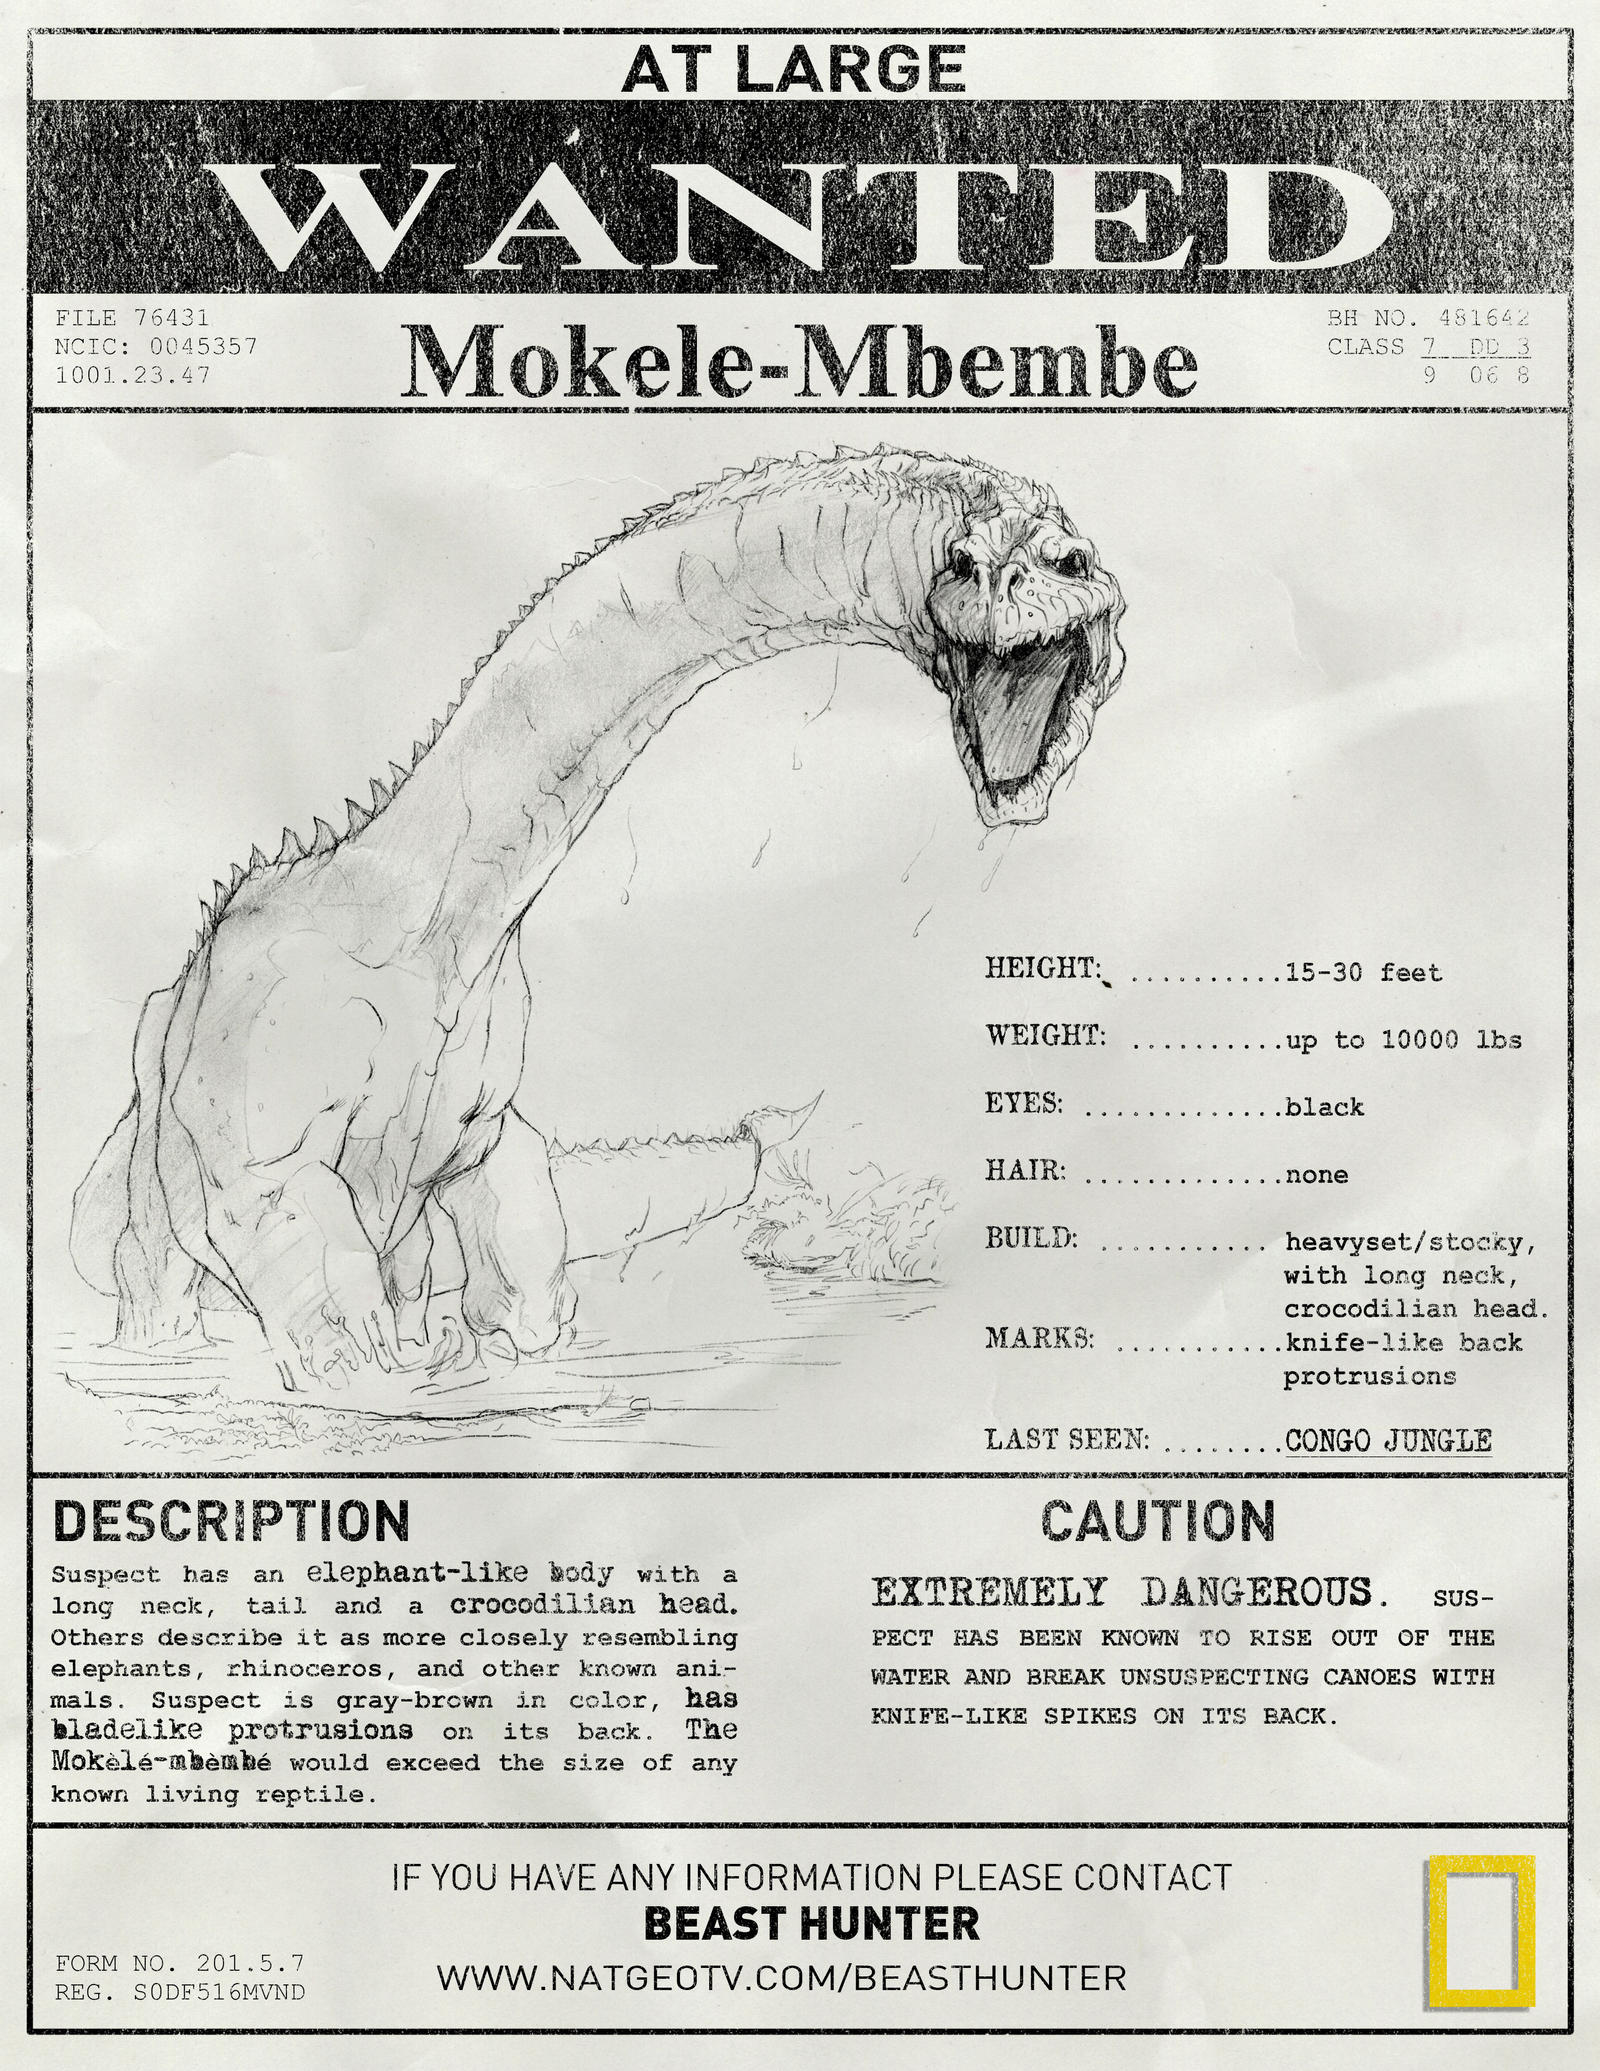 List of Synonyms and Antonyms of the Word: Mokele- Mbembe